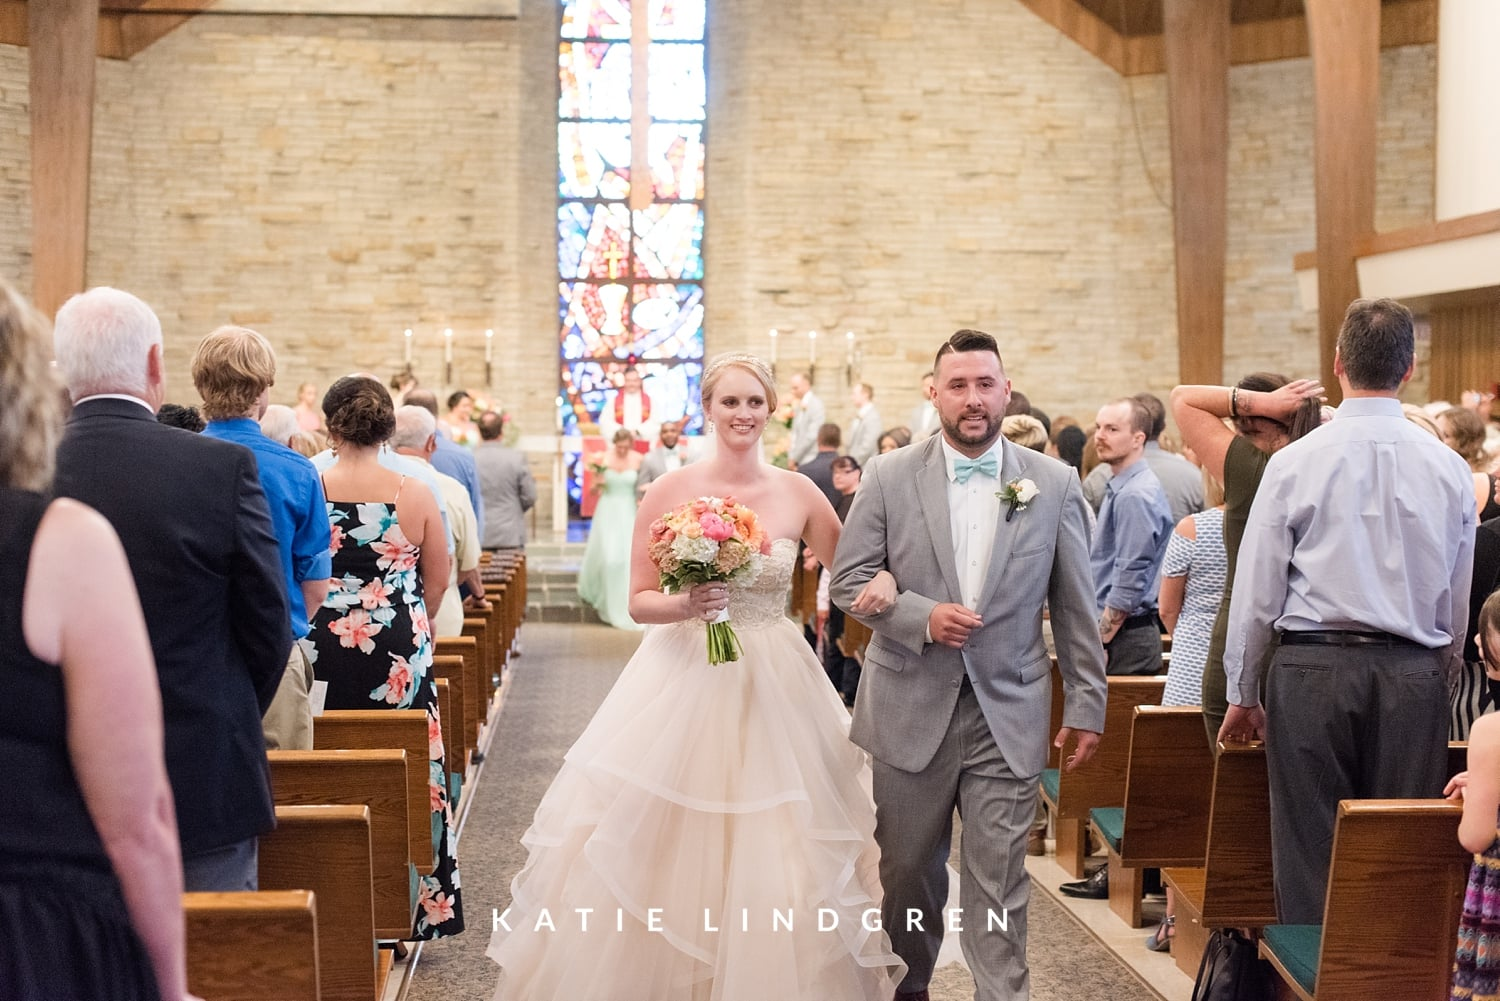 Mollie & Derrick | Des Moines Wedding » Des Moines Area Wedding ...